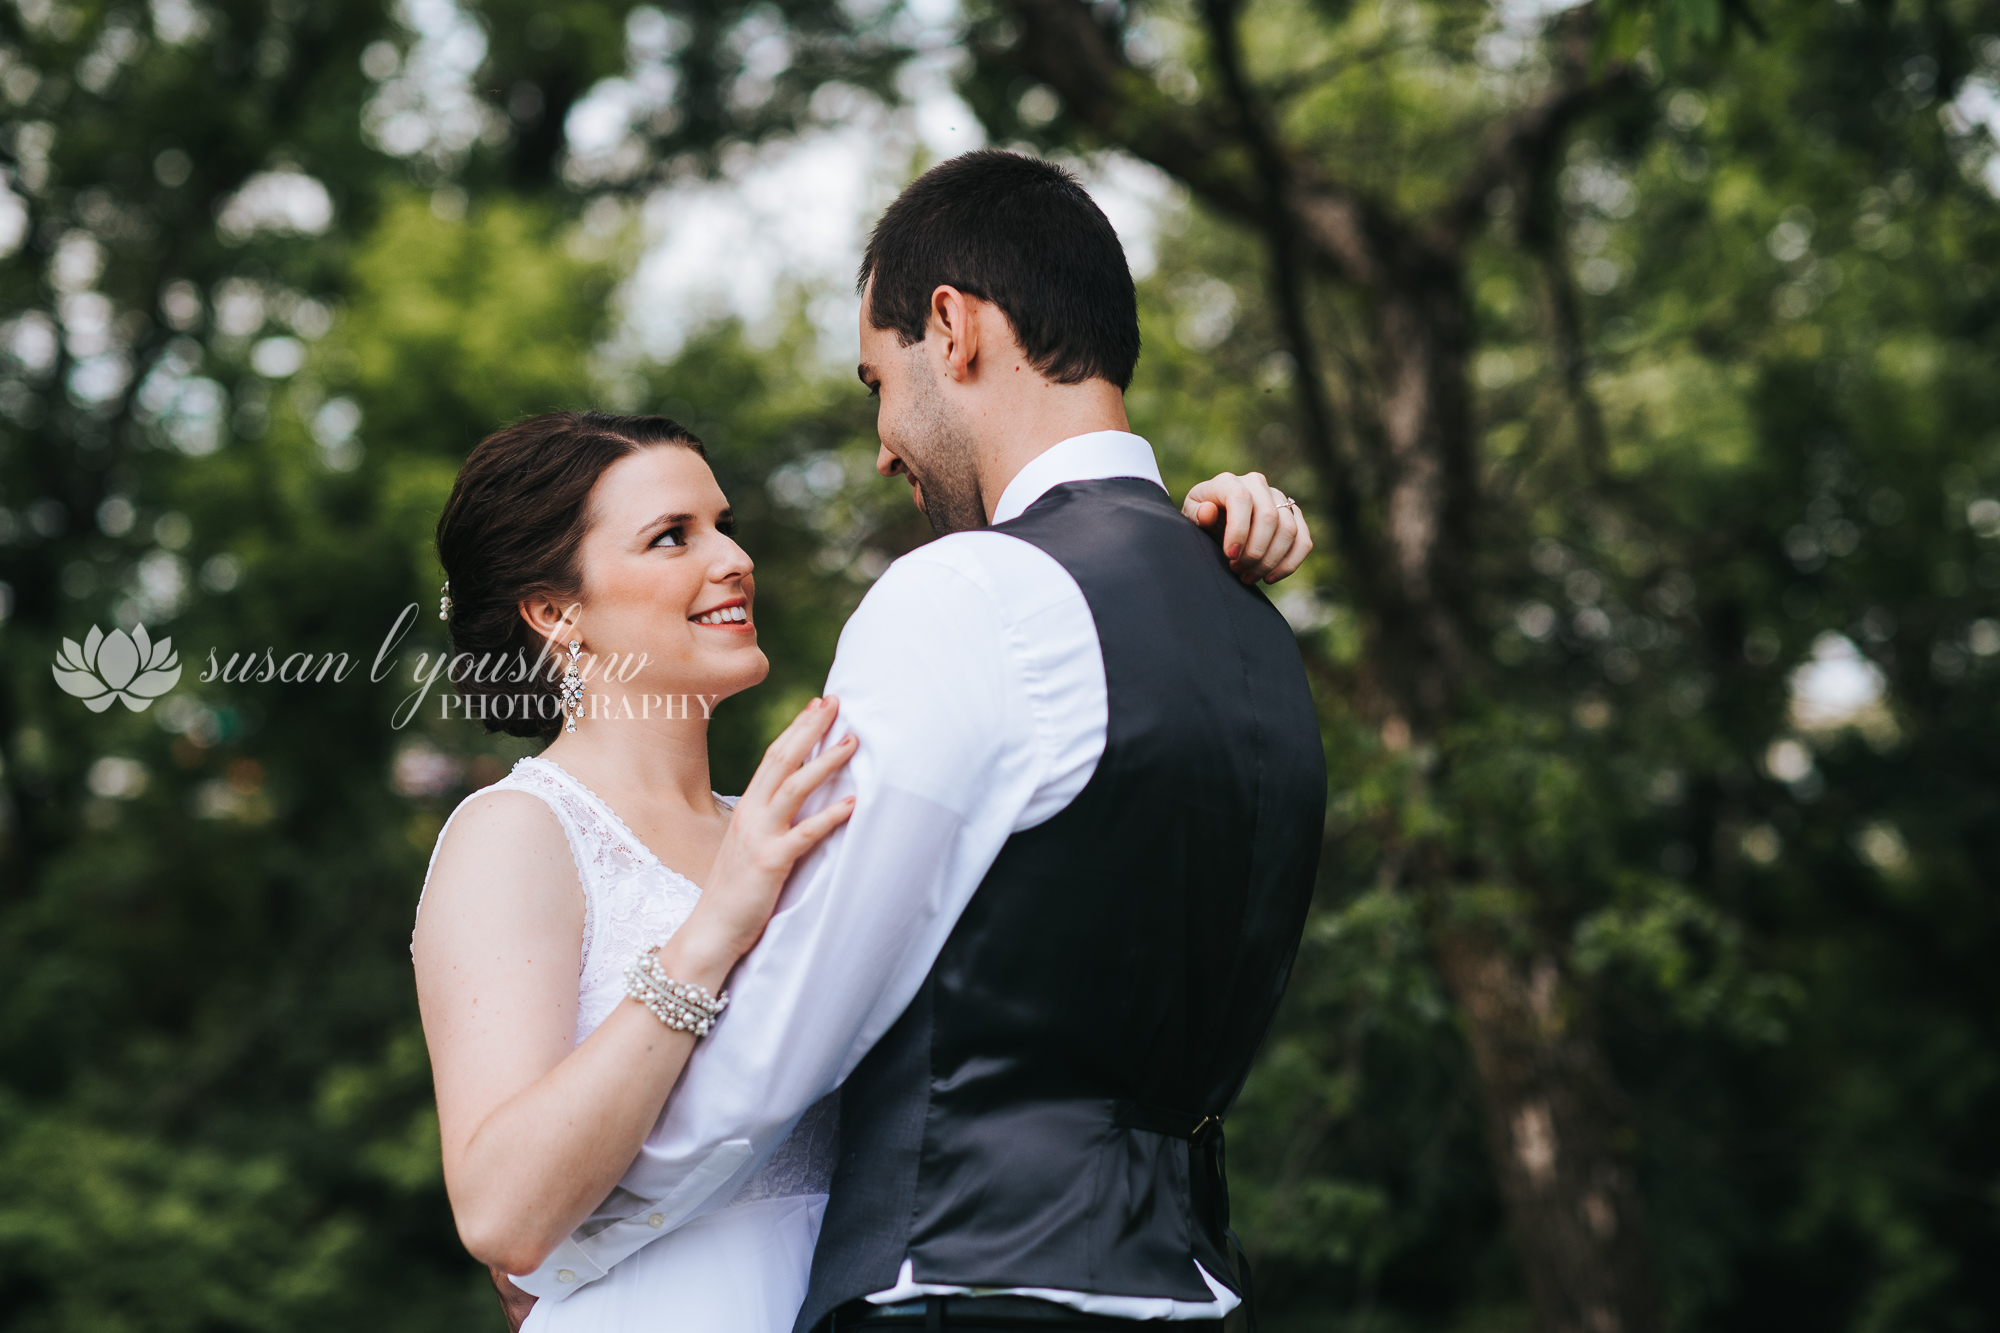 Adena and  Erik Wedding 05-17-2019 SLY Photography-38.jpg